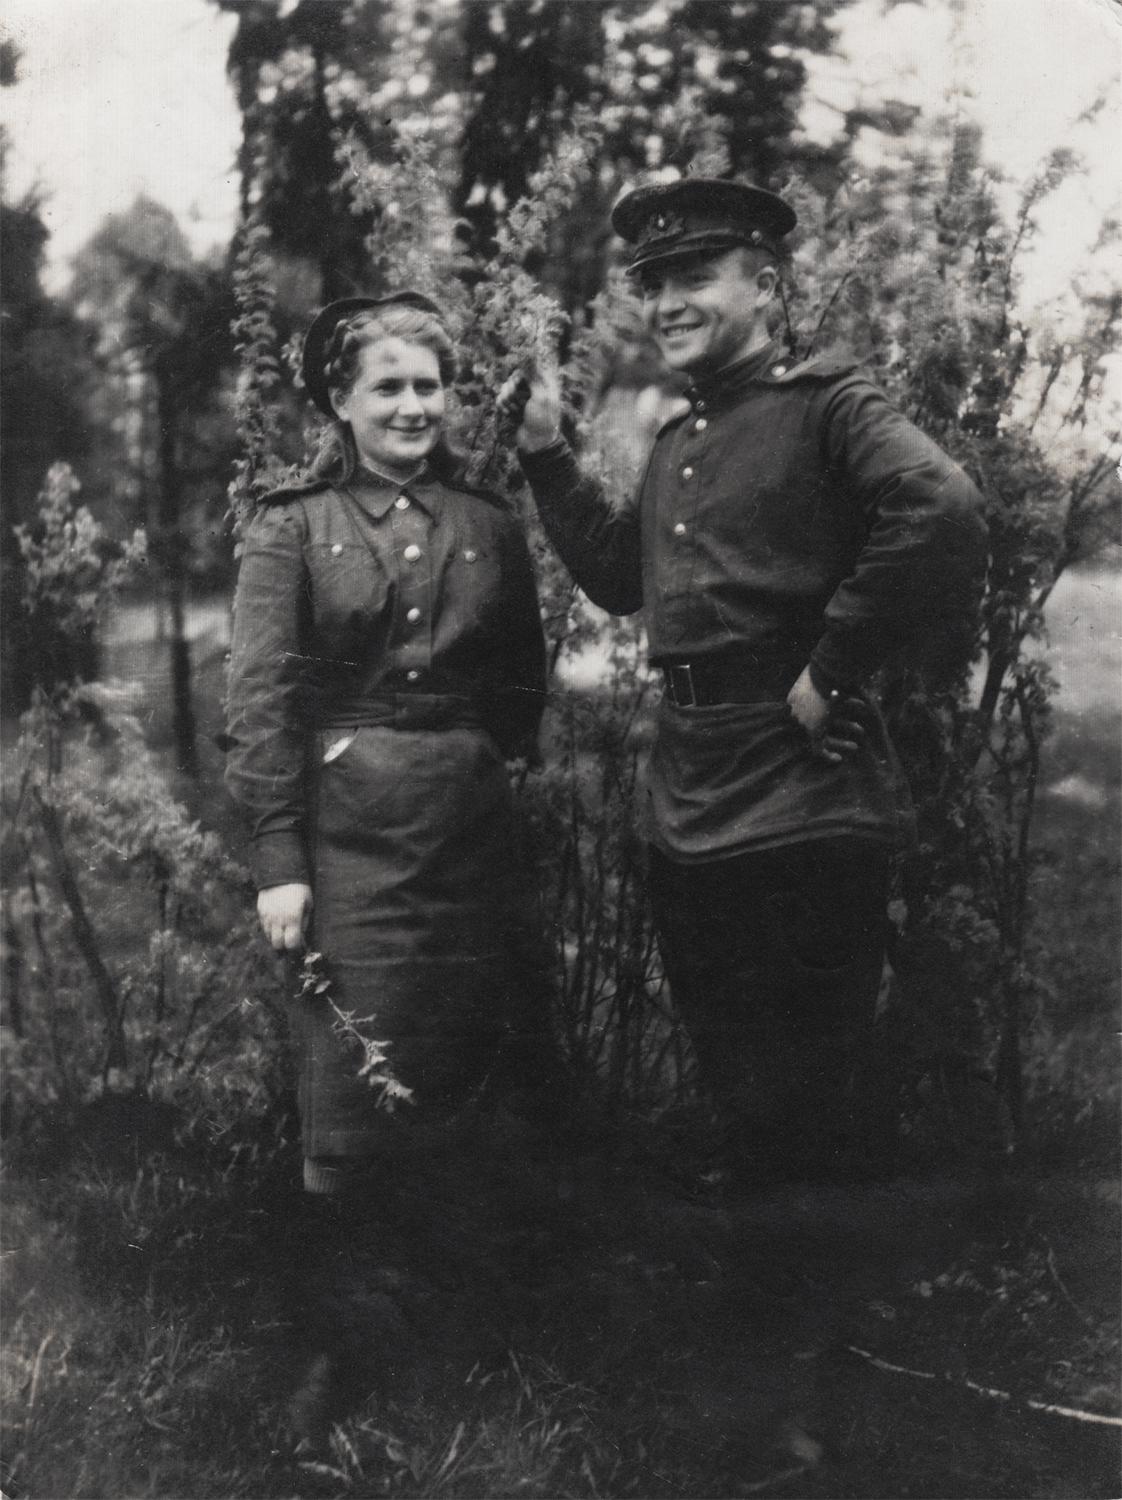 """Photograph sent from Ari Gittentog to his sister: """"To my beloved sister and her family, may this moment be remembered. From your brother Arkady on this greatest day of world-wide celebration. May 9, 1945. Happy Victory!""""."""